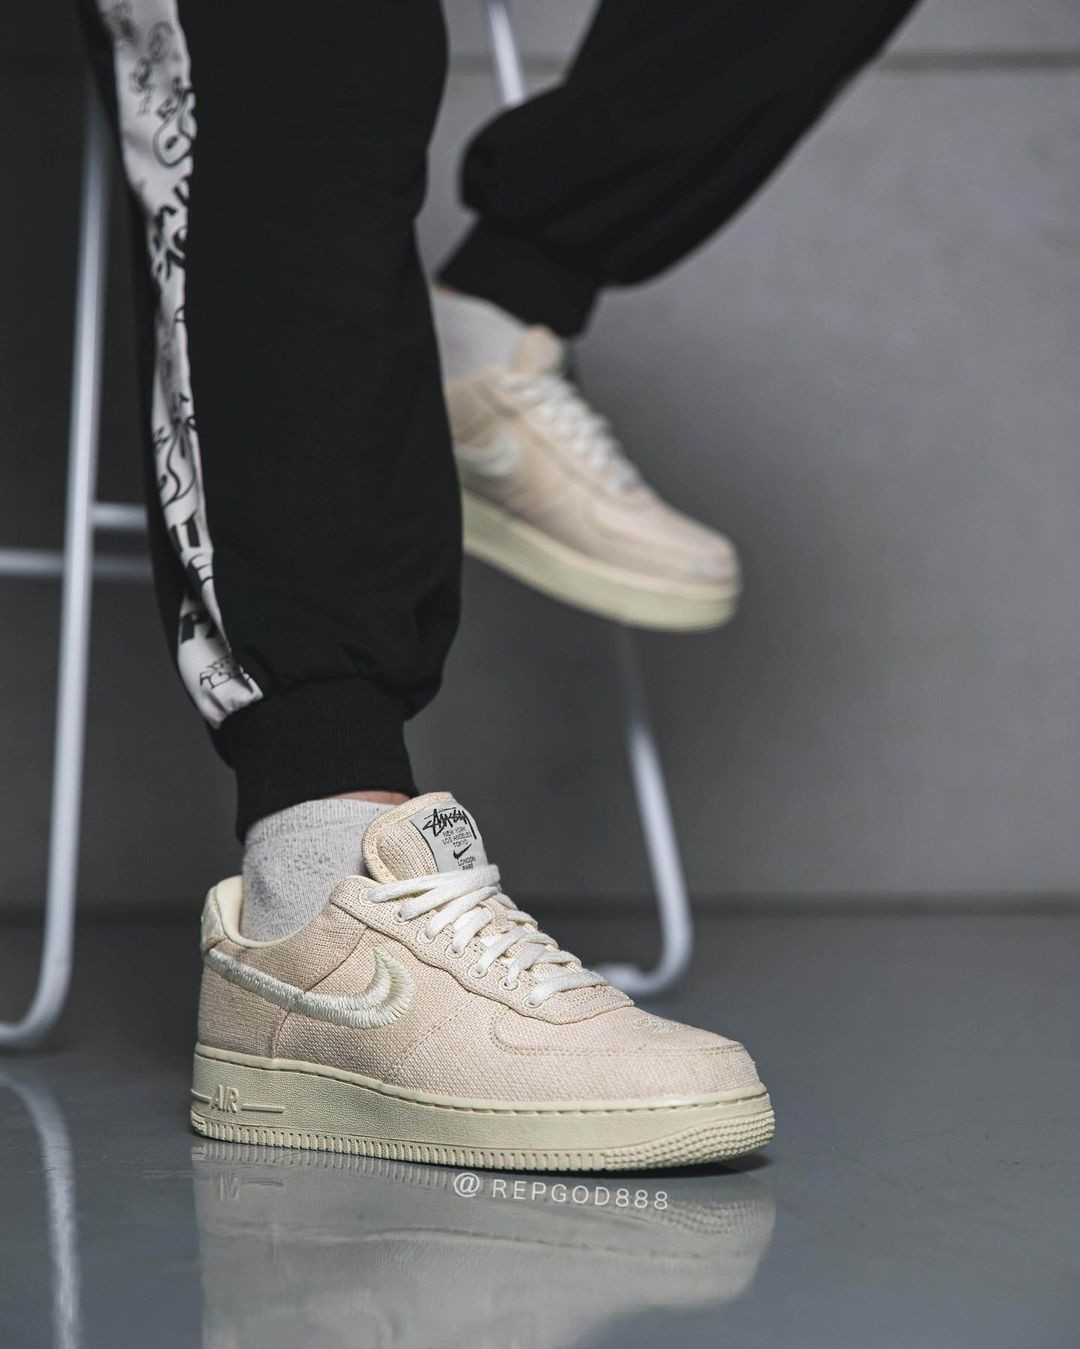 ▲▼Stüssy X NIKE AIR FORCE 1:FOSSIL STONE。(圖/翻攝自IG@repgod888)